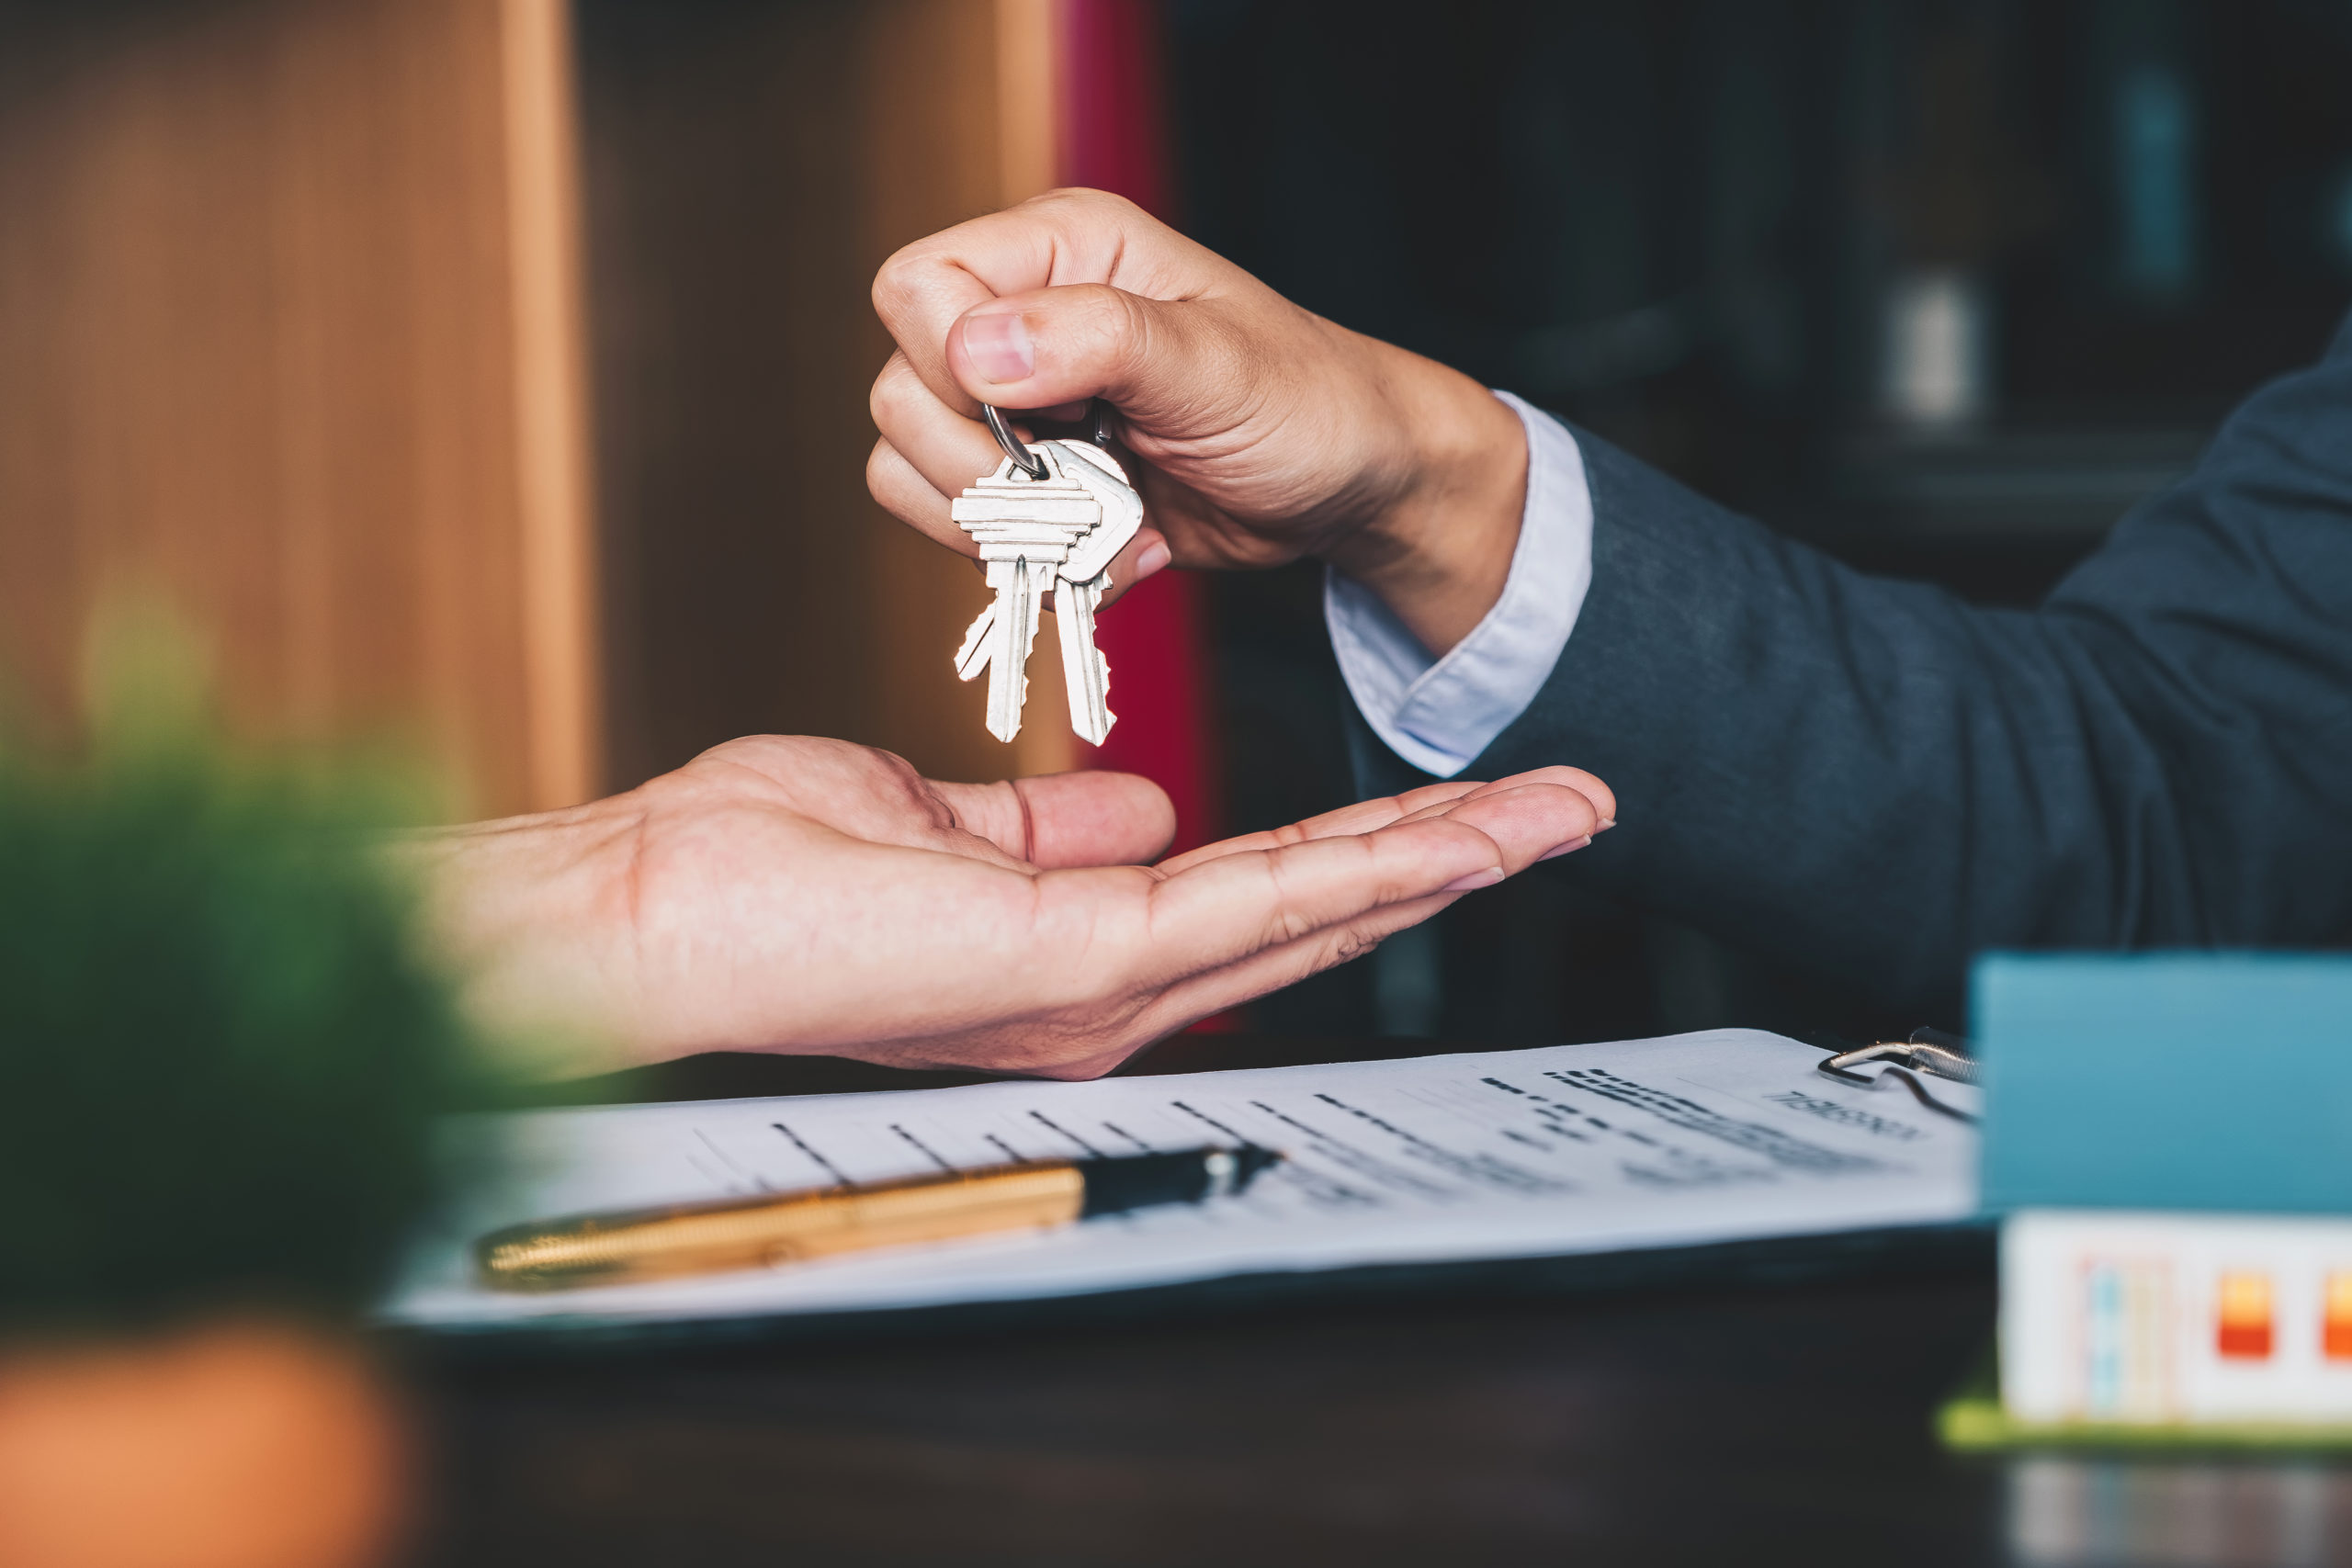 a hand giving a set of keys to another hand and a contract on the table